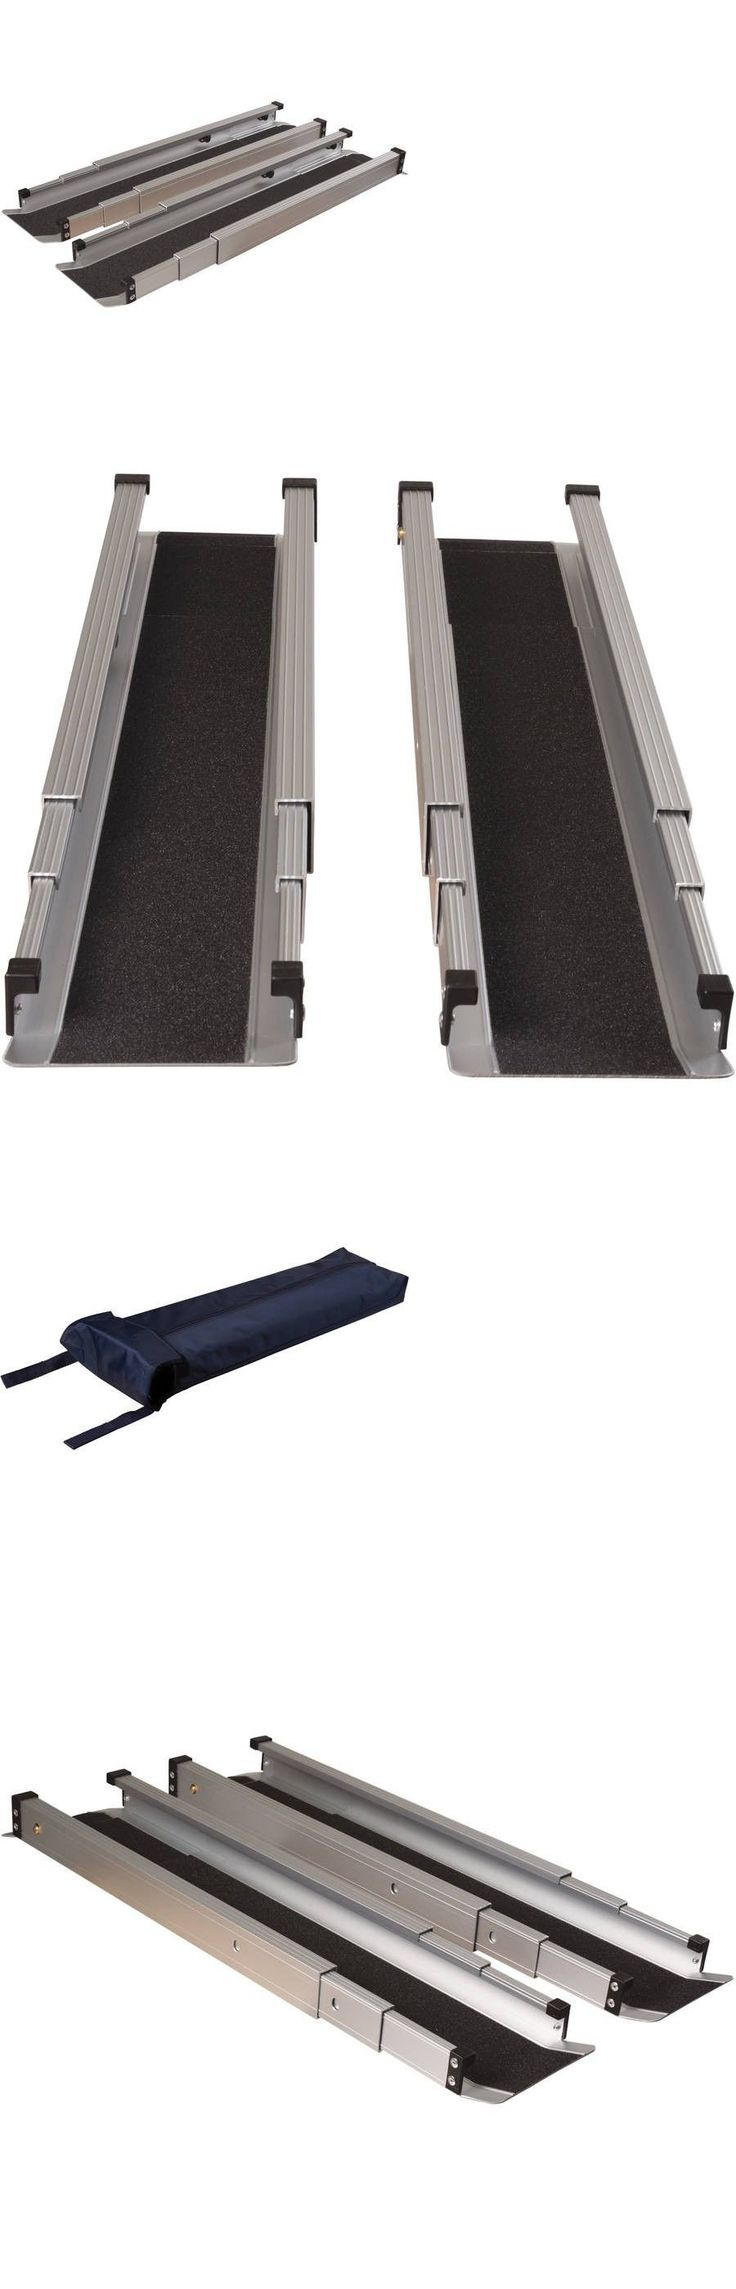 Access Ramps: Wheelchair Curb Ramp Portable Homes Adjustable Aluminium Threshold Folding 5 Ft -> BUY IT NOW ONLY: $159.99 on eBay!